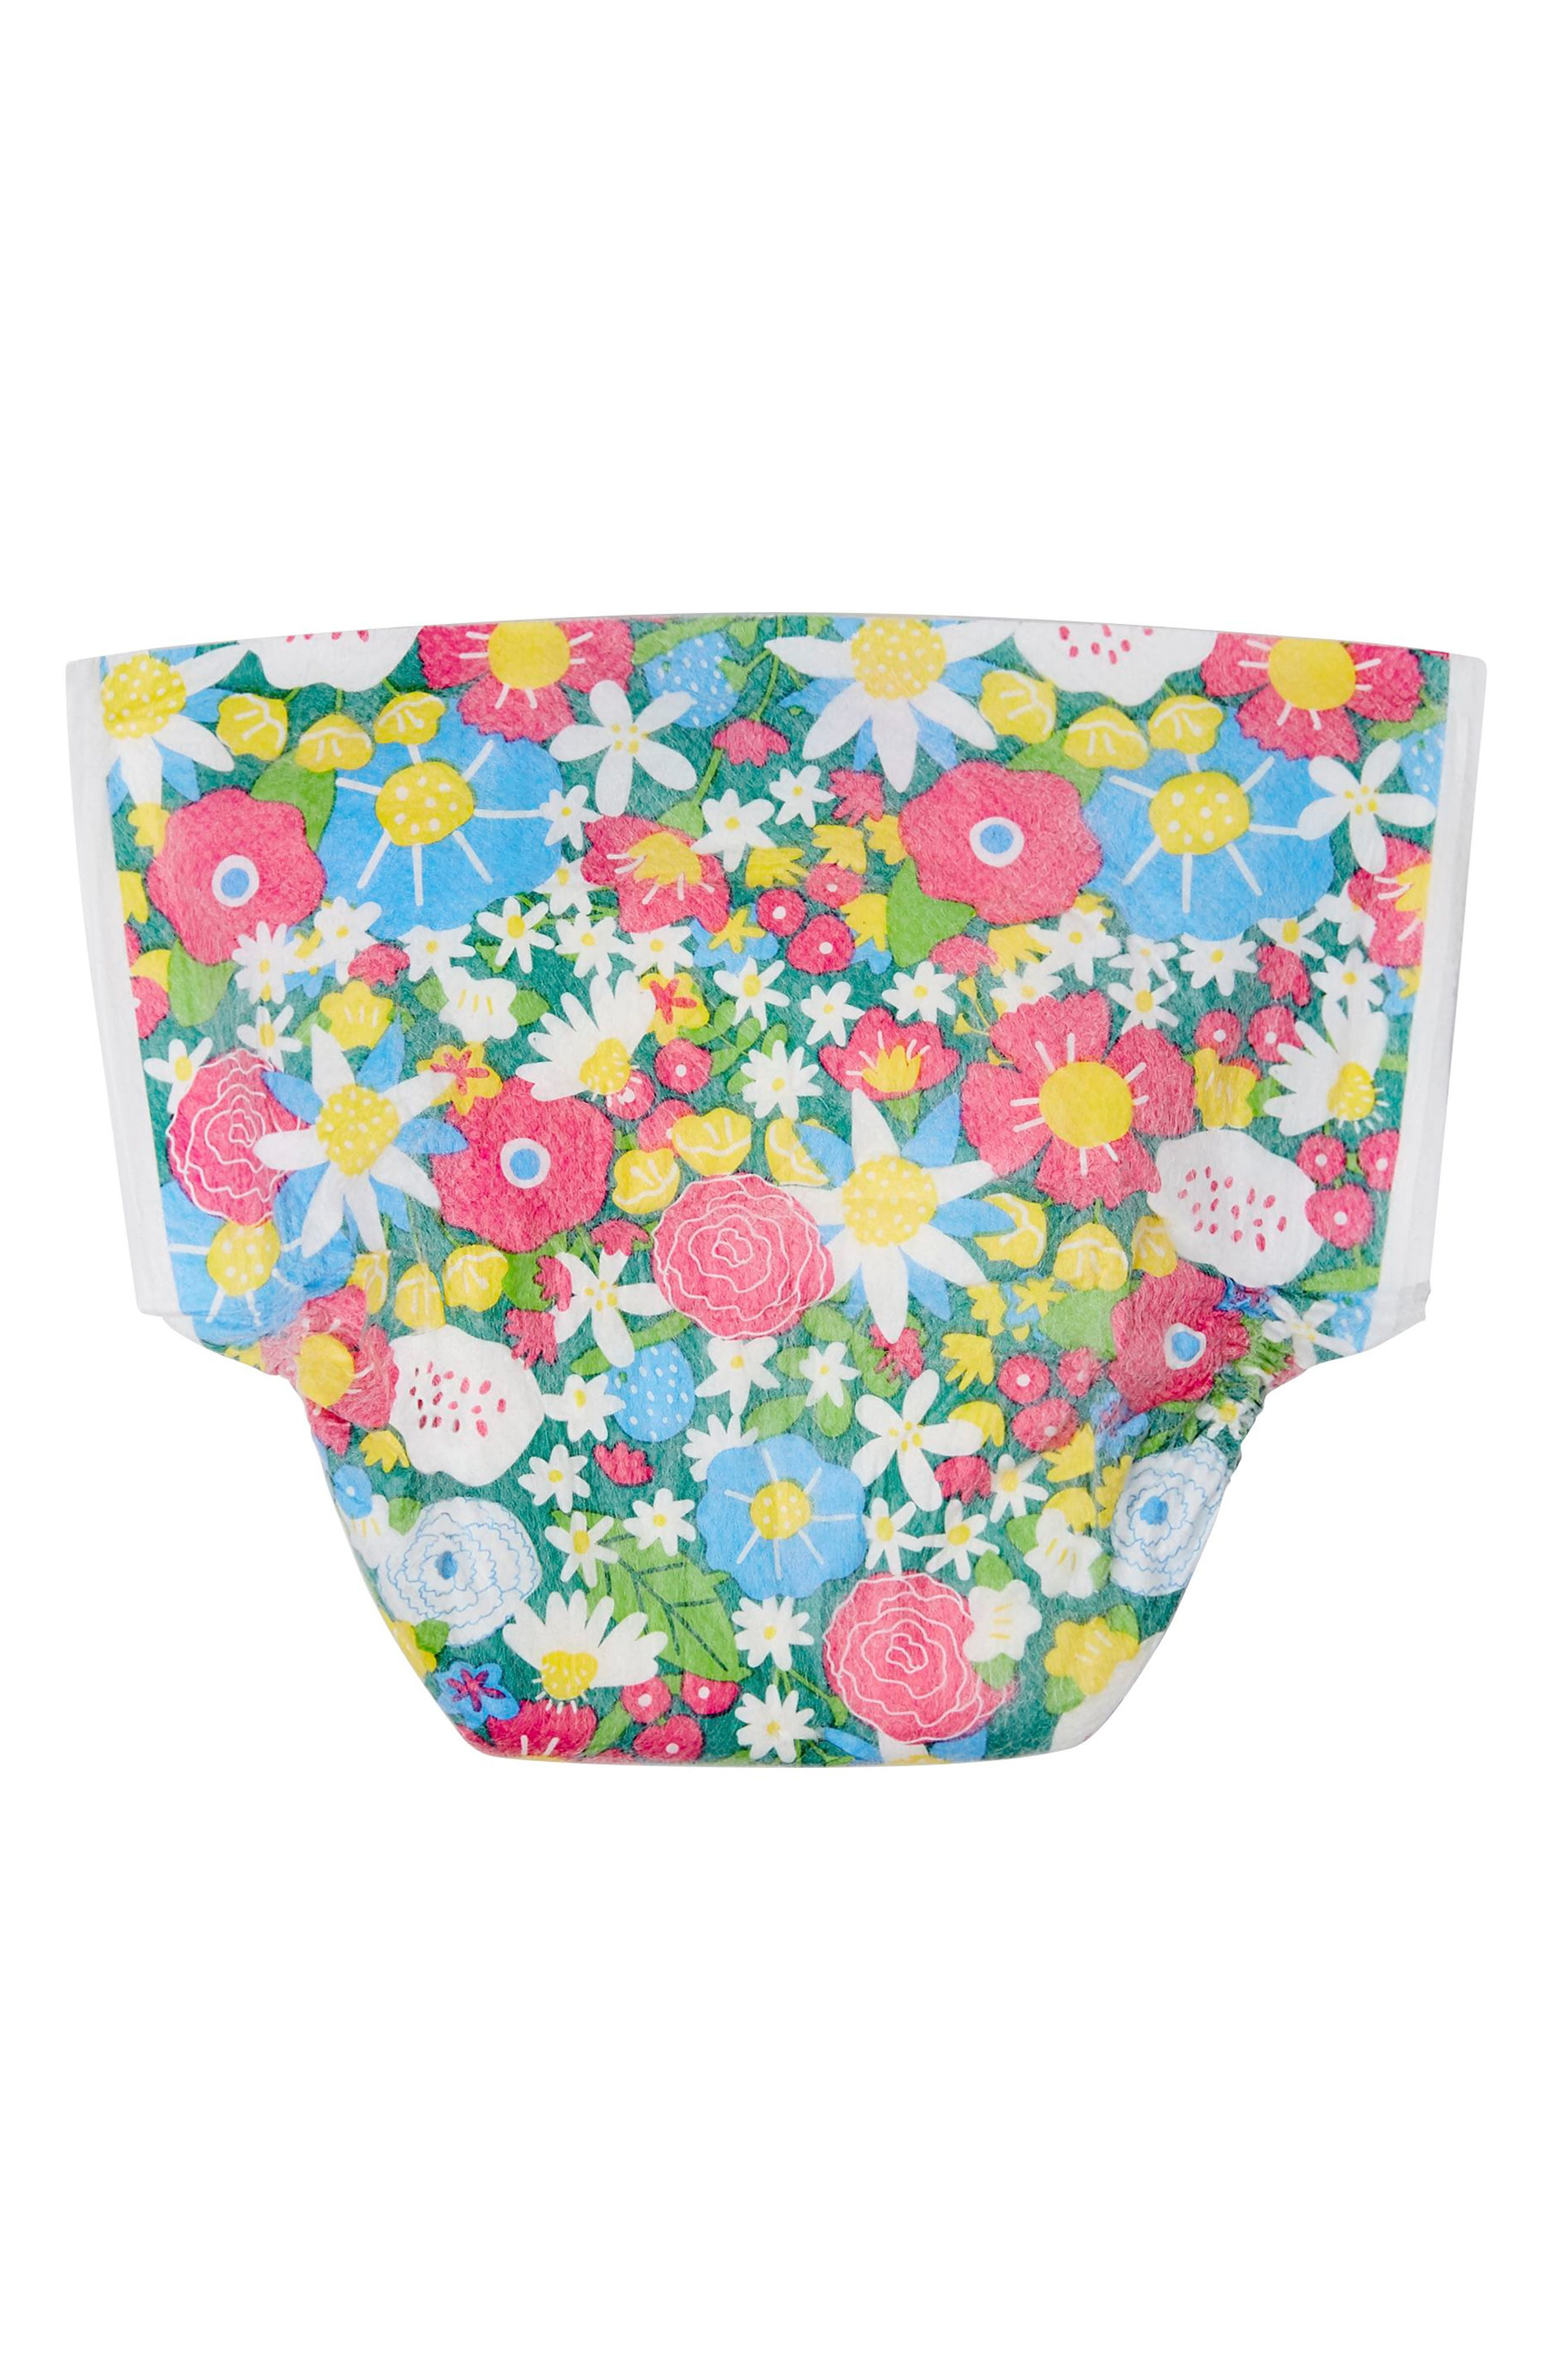 Flower Patch Diapers,                             Alternate thumbnail 3, color,                             650